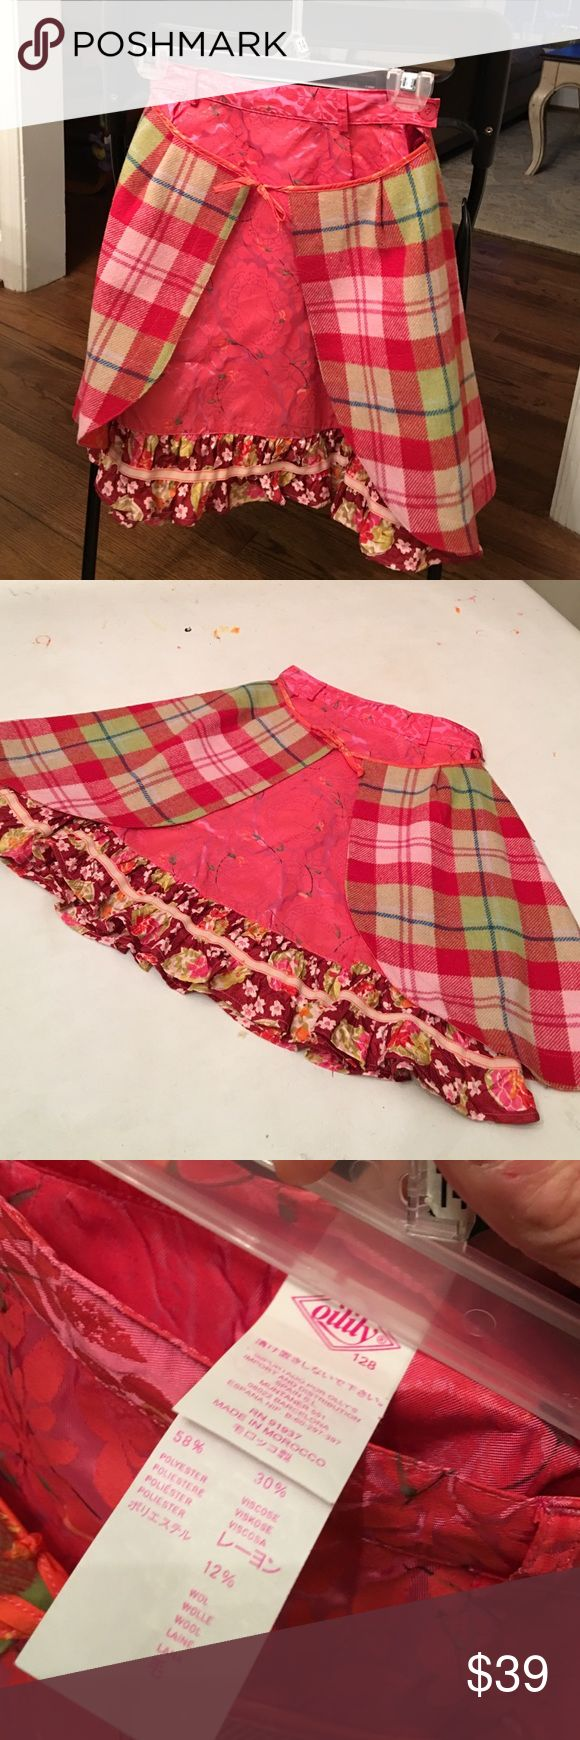 Awesome oilily multi color skirt for girls Beautiful skirt. Colorful. Bottom layer polyester/viscose. Attached with a wool layer over. Like new condition. Size 128 European which is like a girls 7/8. Oilily Bottoms Skirts